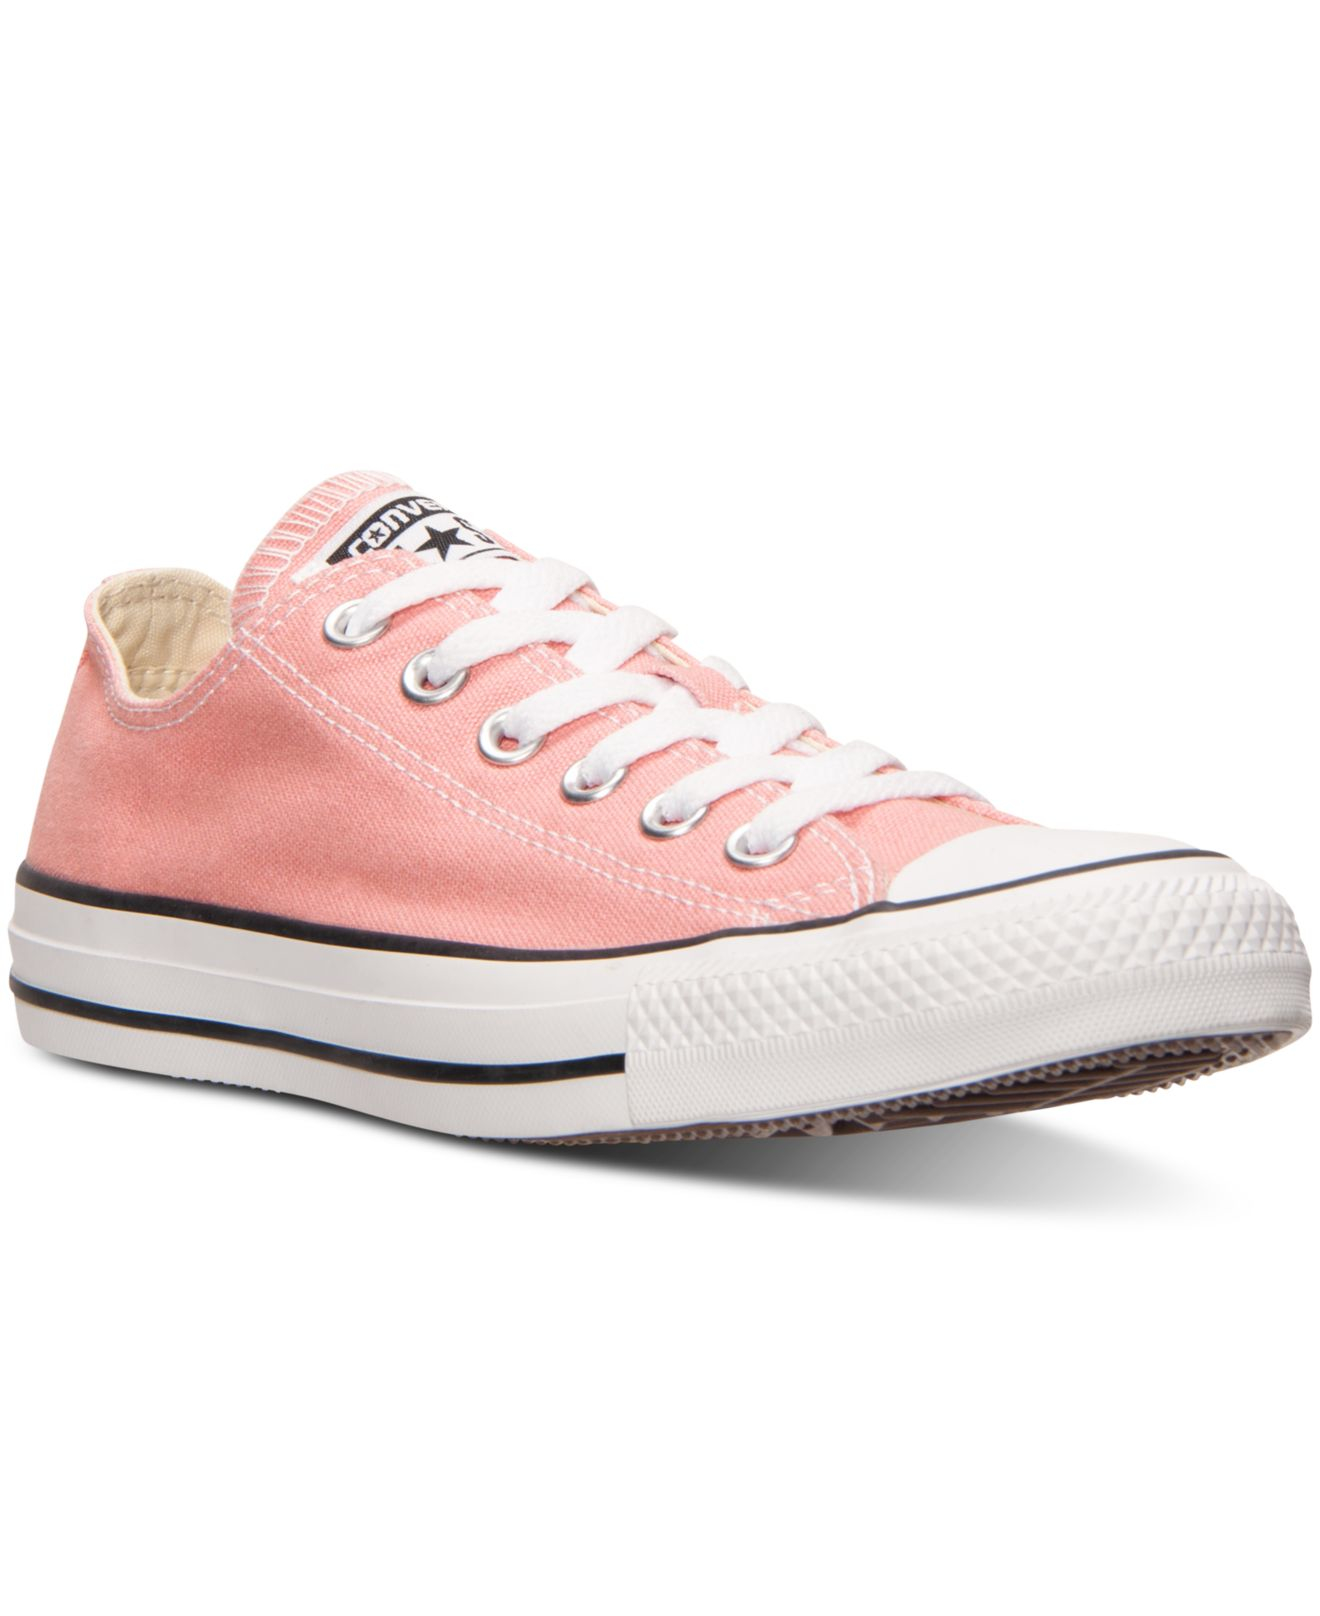 252ebd64b63351 Lyst - Converse Women s Chuck Taylor Ox Casual Sneakers From Finish ...